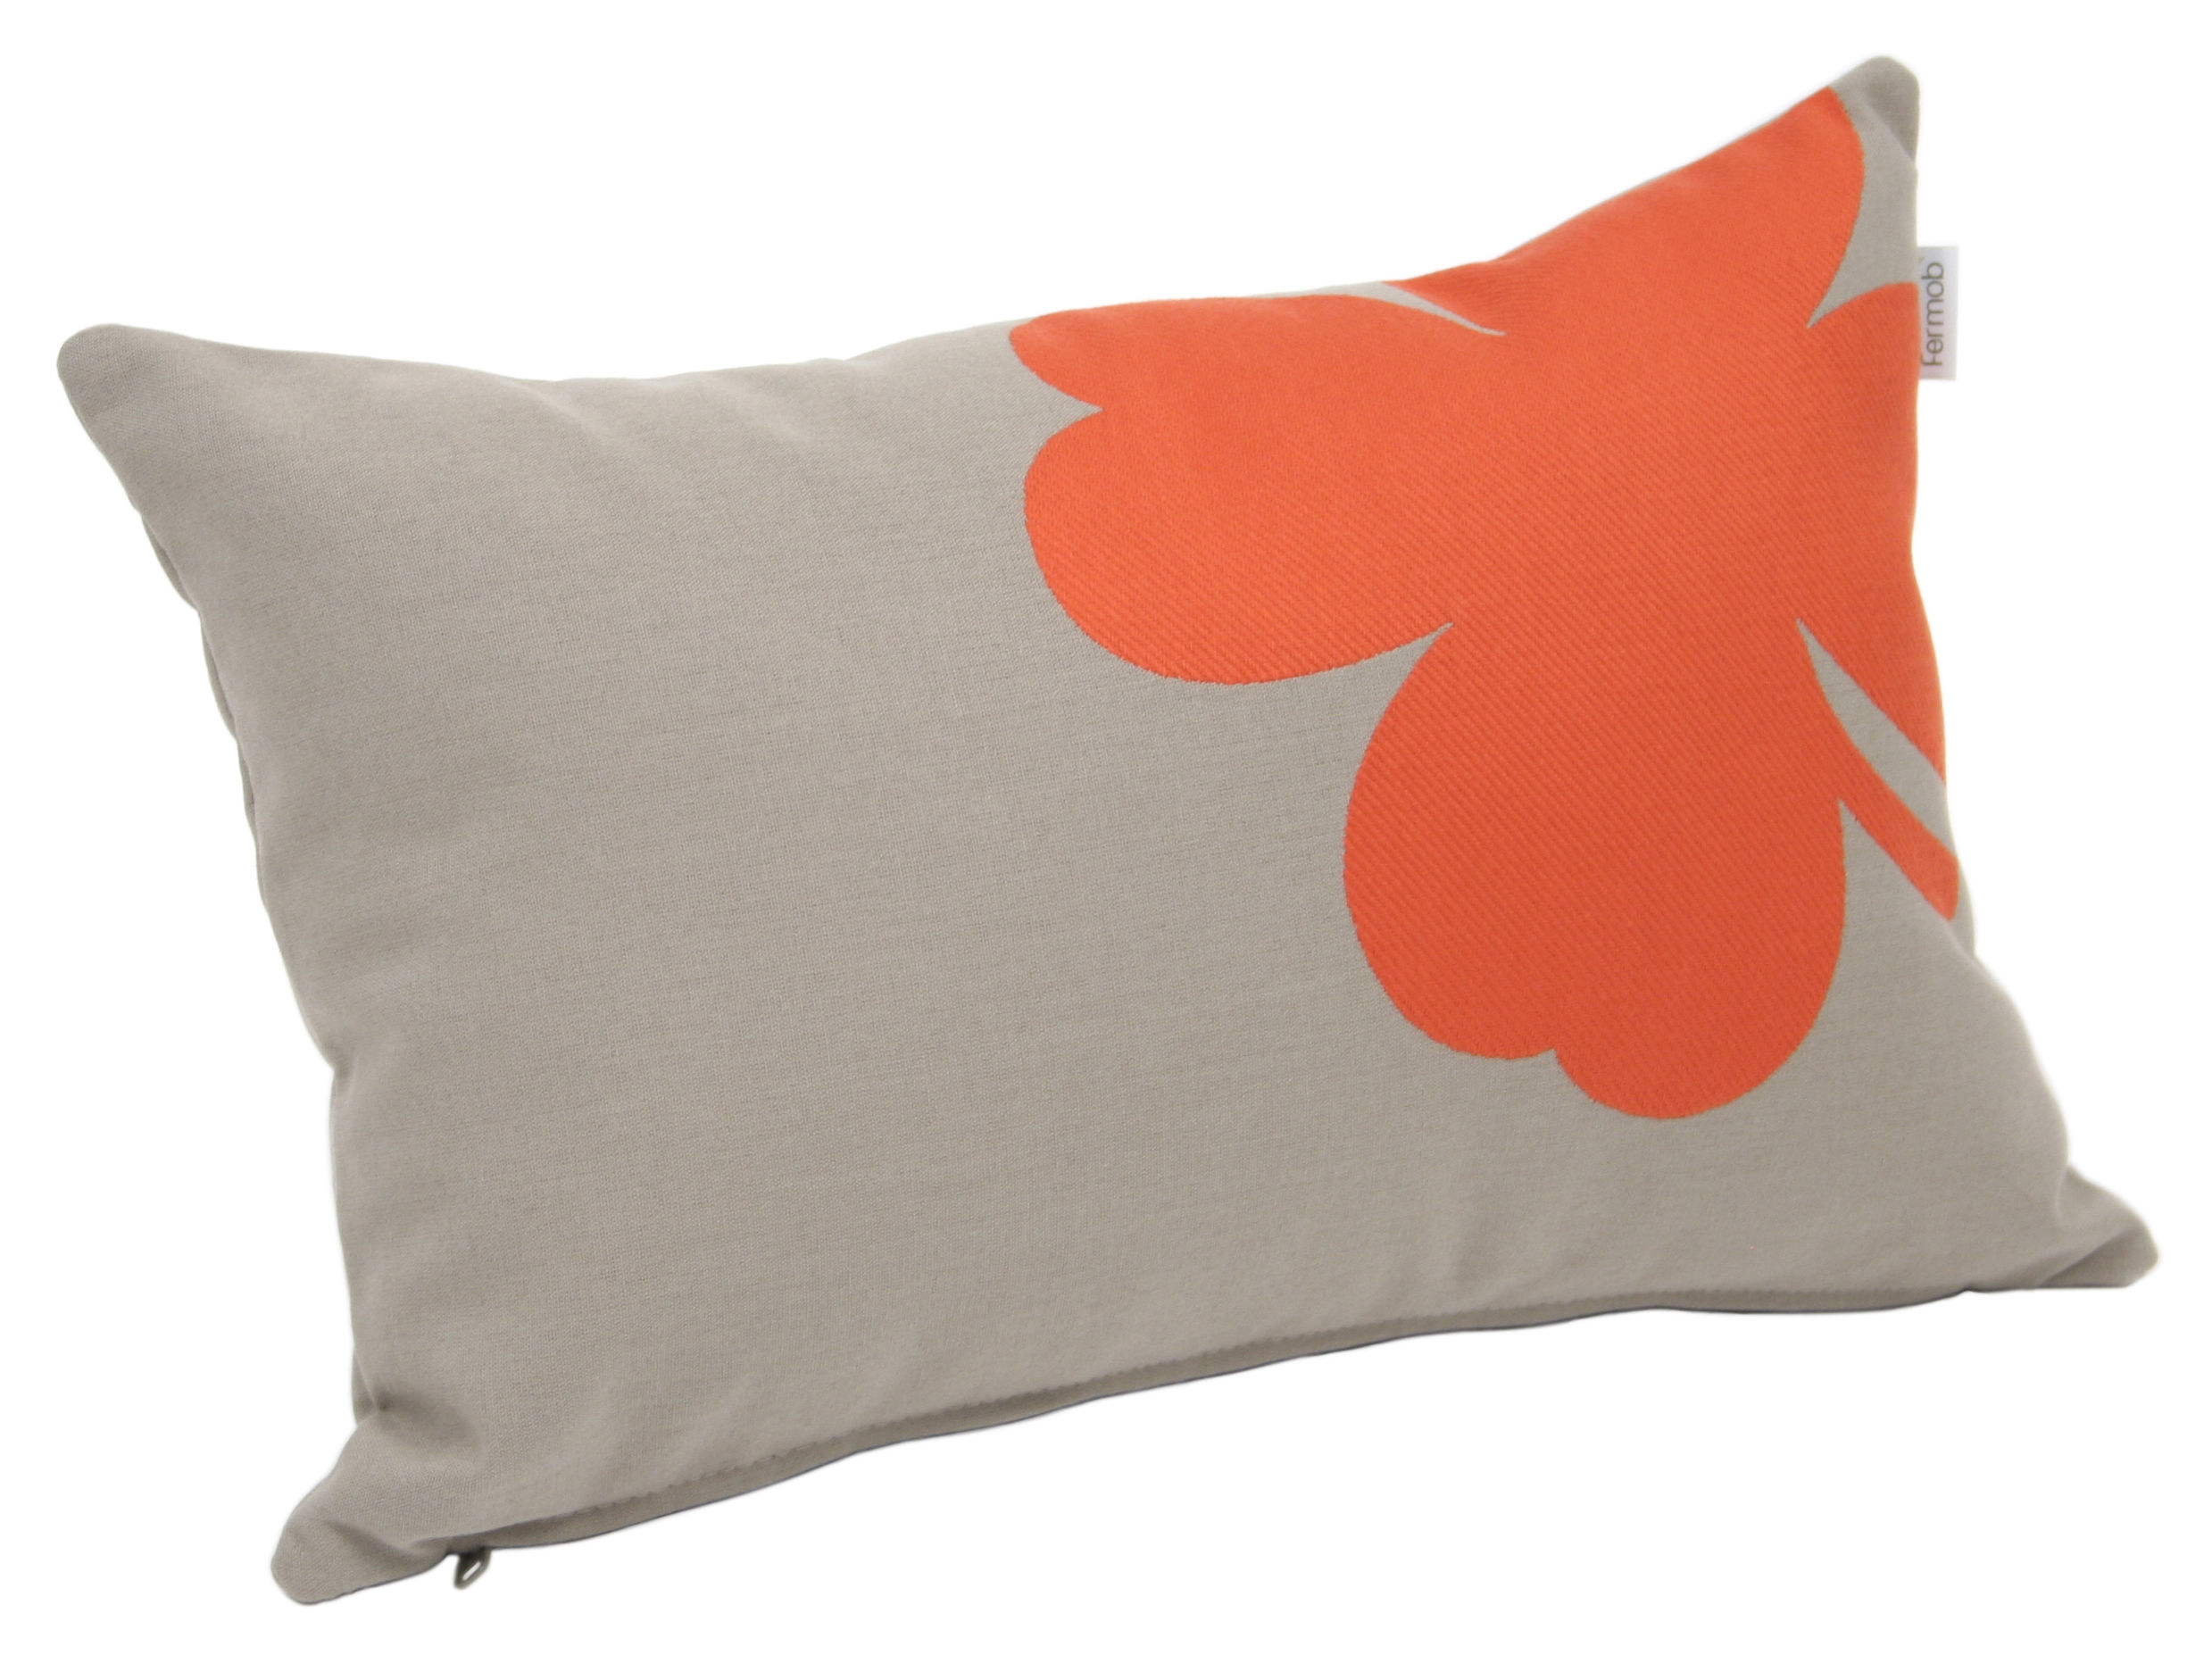 coussin d 39 ext rieur tr fle fermob ablette motif corail made in design. Black Bedroom Furniture Sets. Home Design Ideas